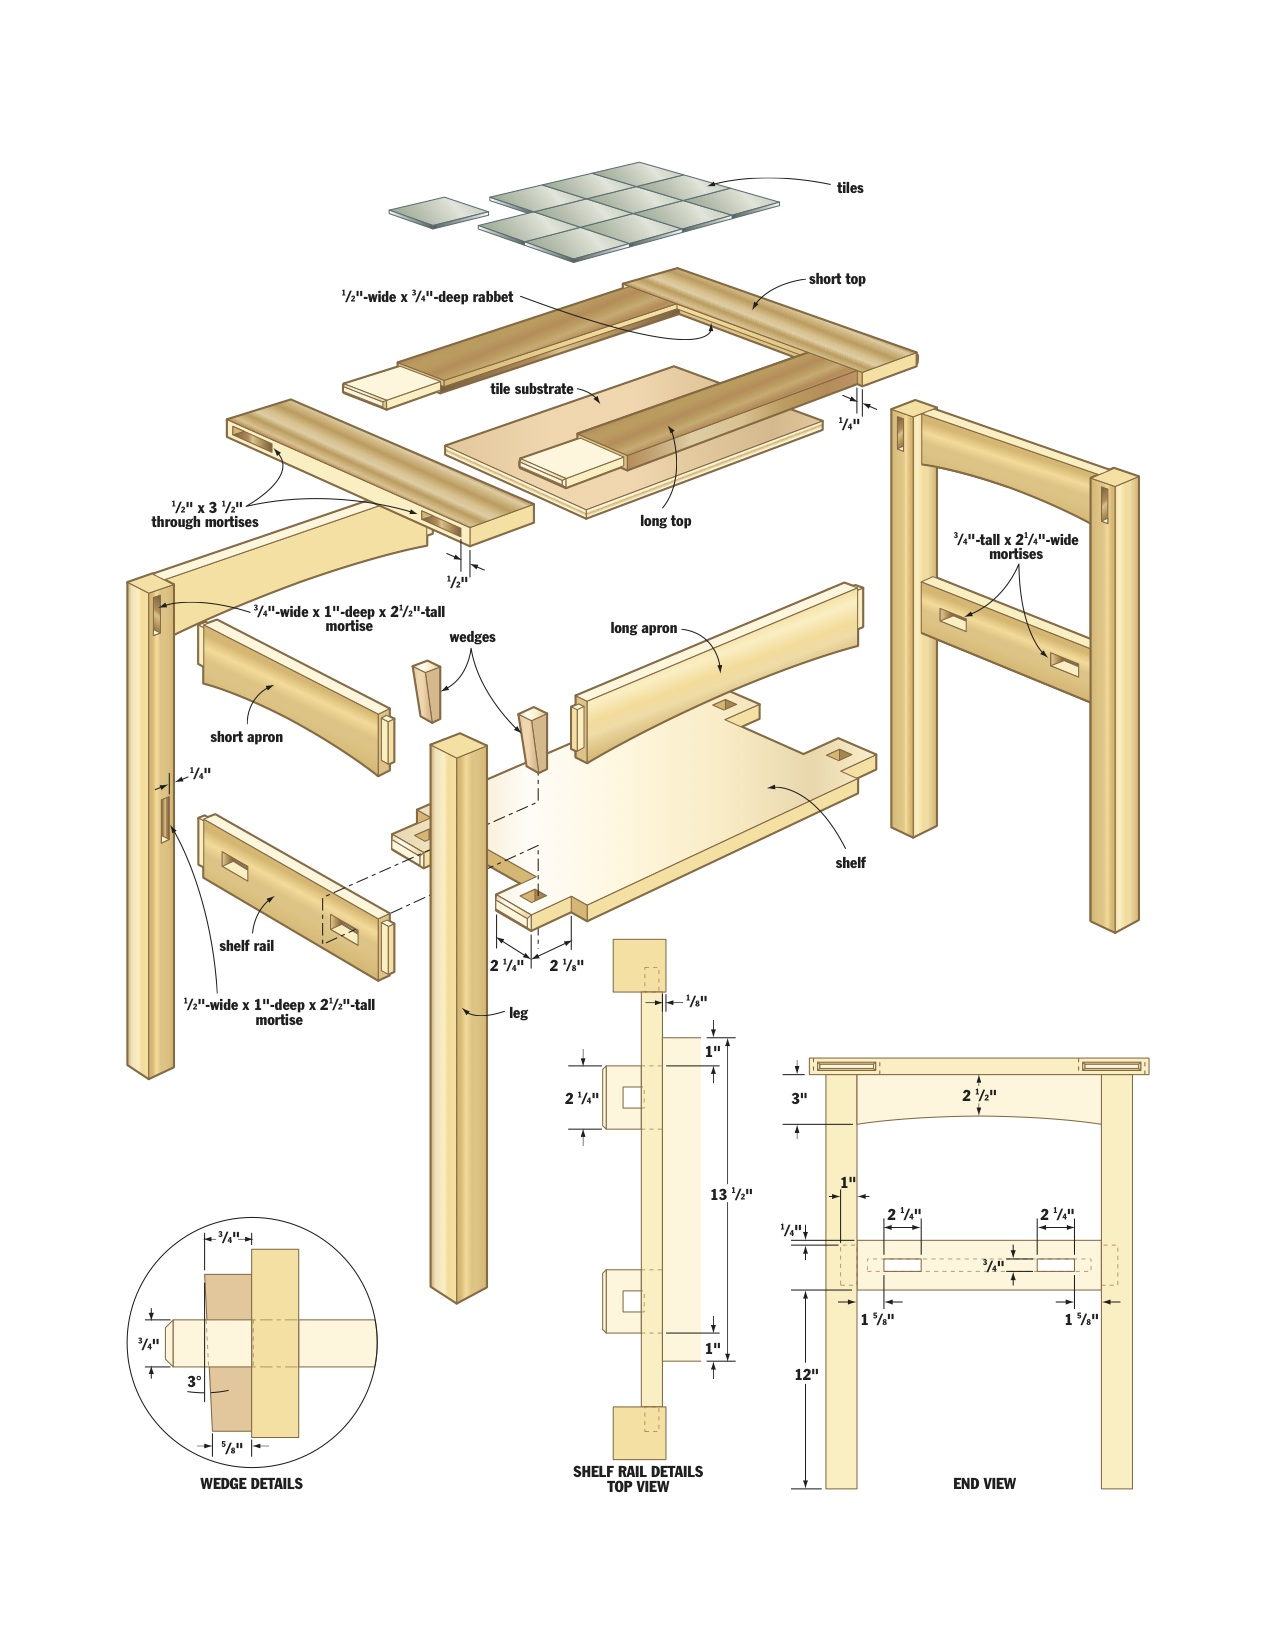 PDF DIY Woodworking Projects Mission Download garage shop  : mission side table woodworking plans 2 from antiqueroses.org size 1275 x 1650 jpeg 259kB